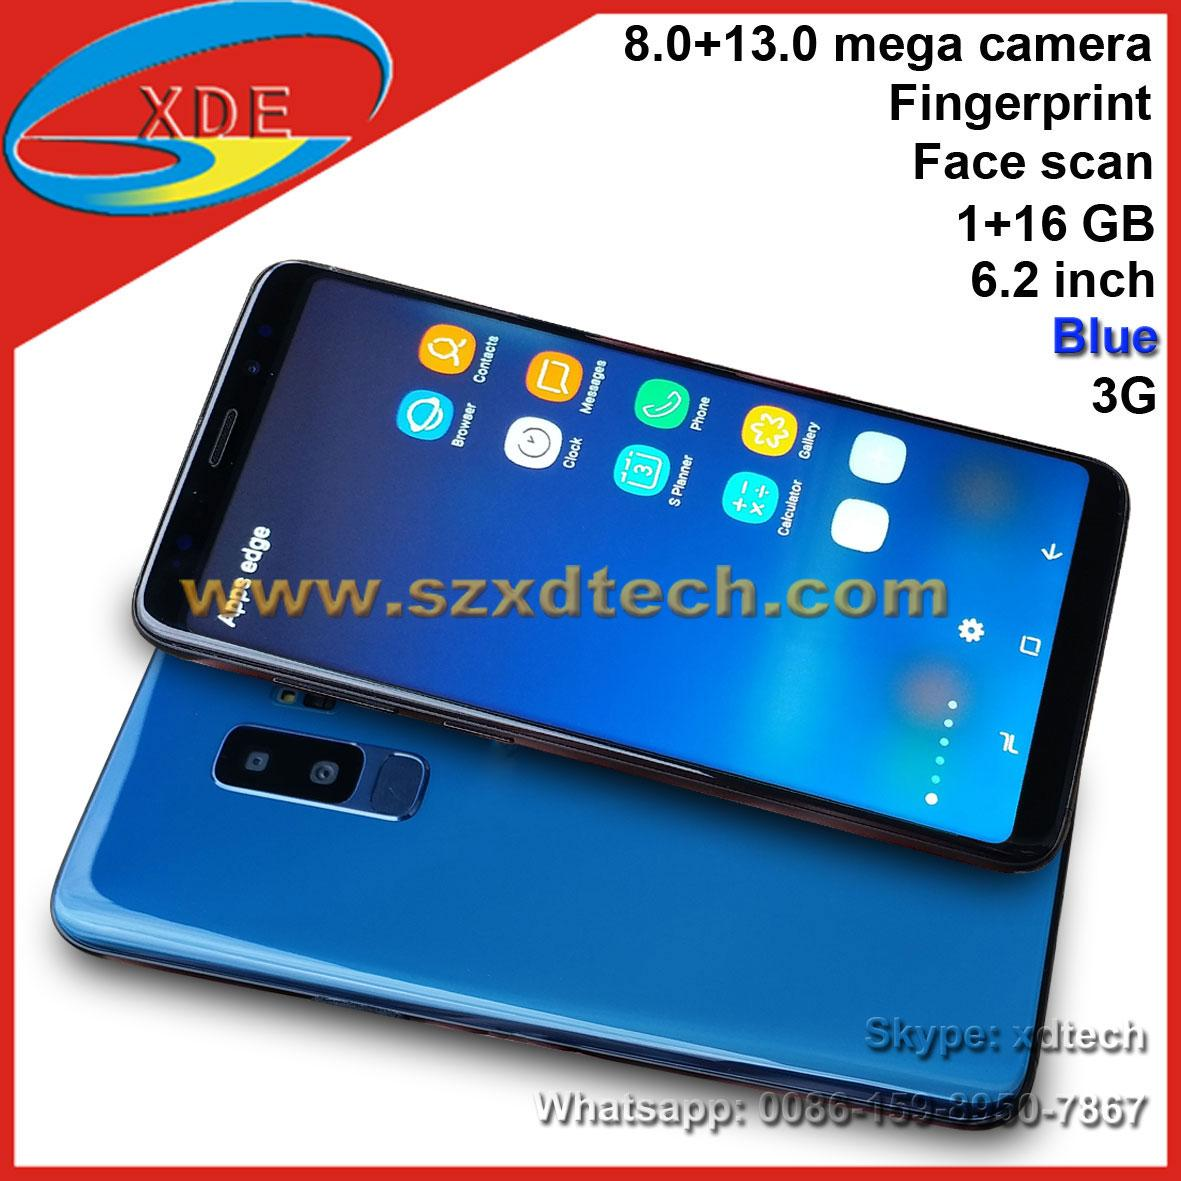 6.2 inch Big Screen Android Smart Phone Latest Phones Best Seller